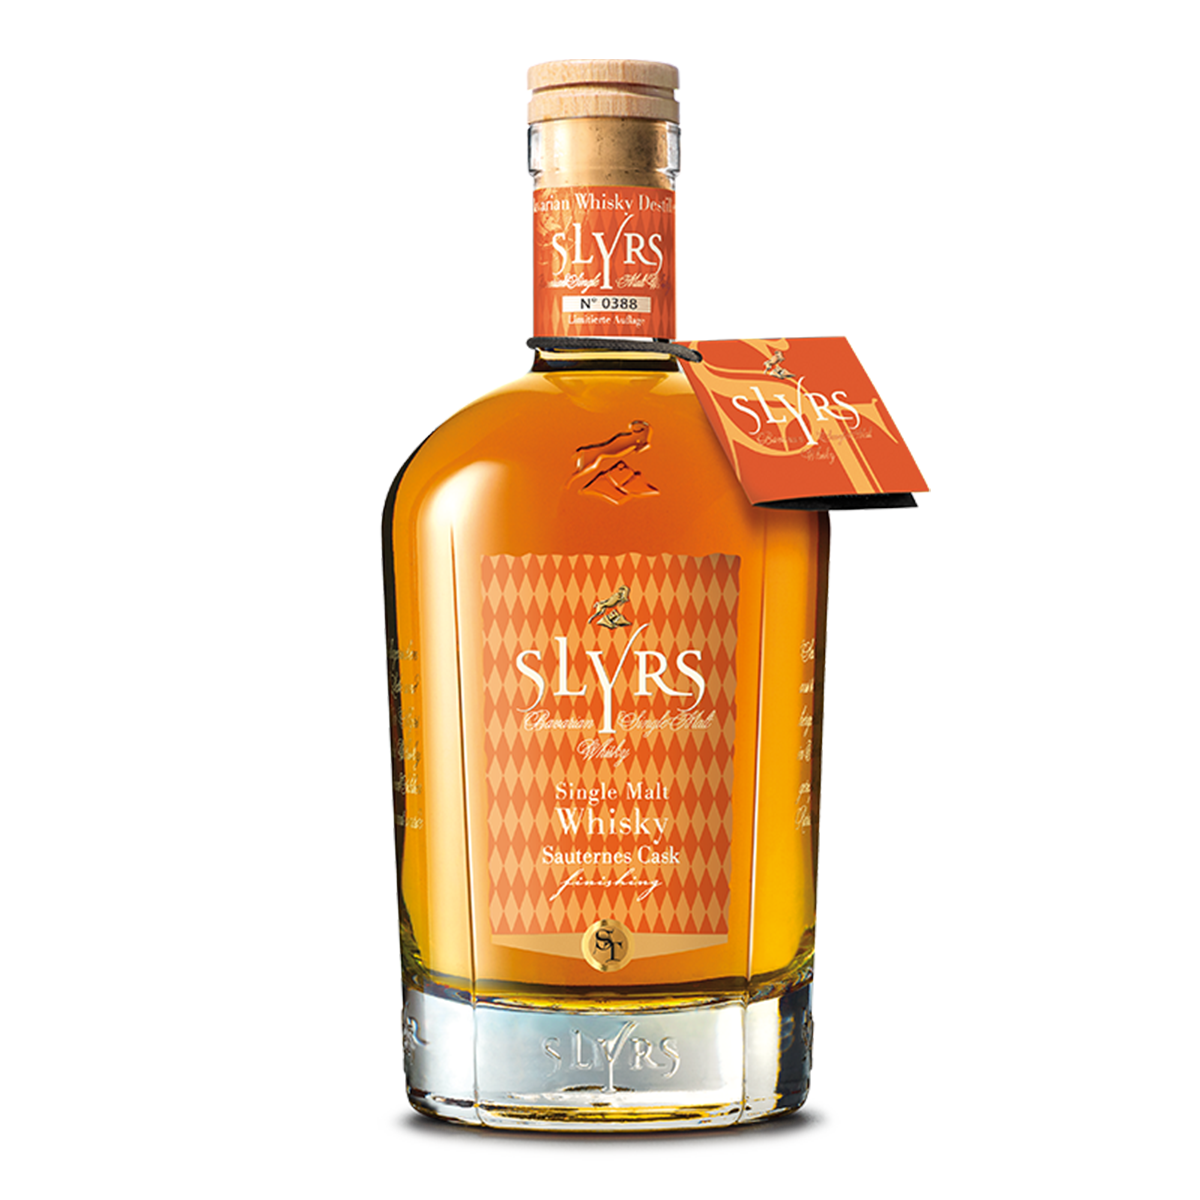 SLYRS Single Malt Whisky | Finition fût de sauternes | 46 % vol.